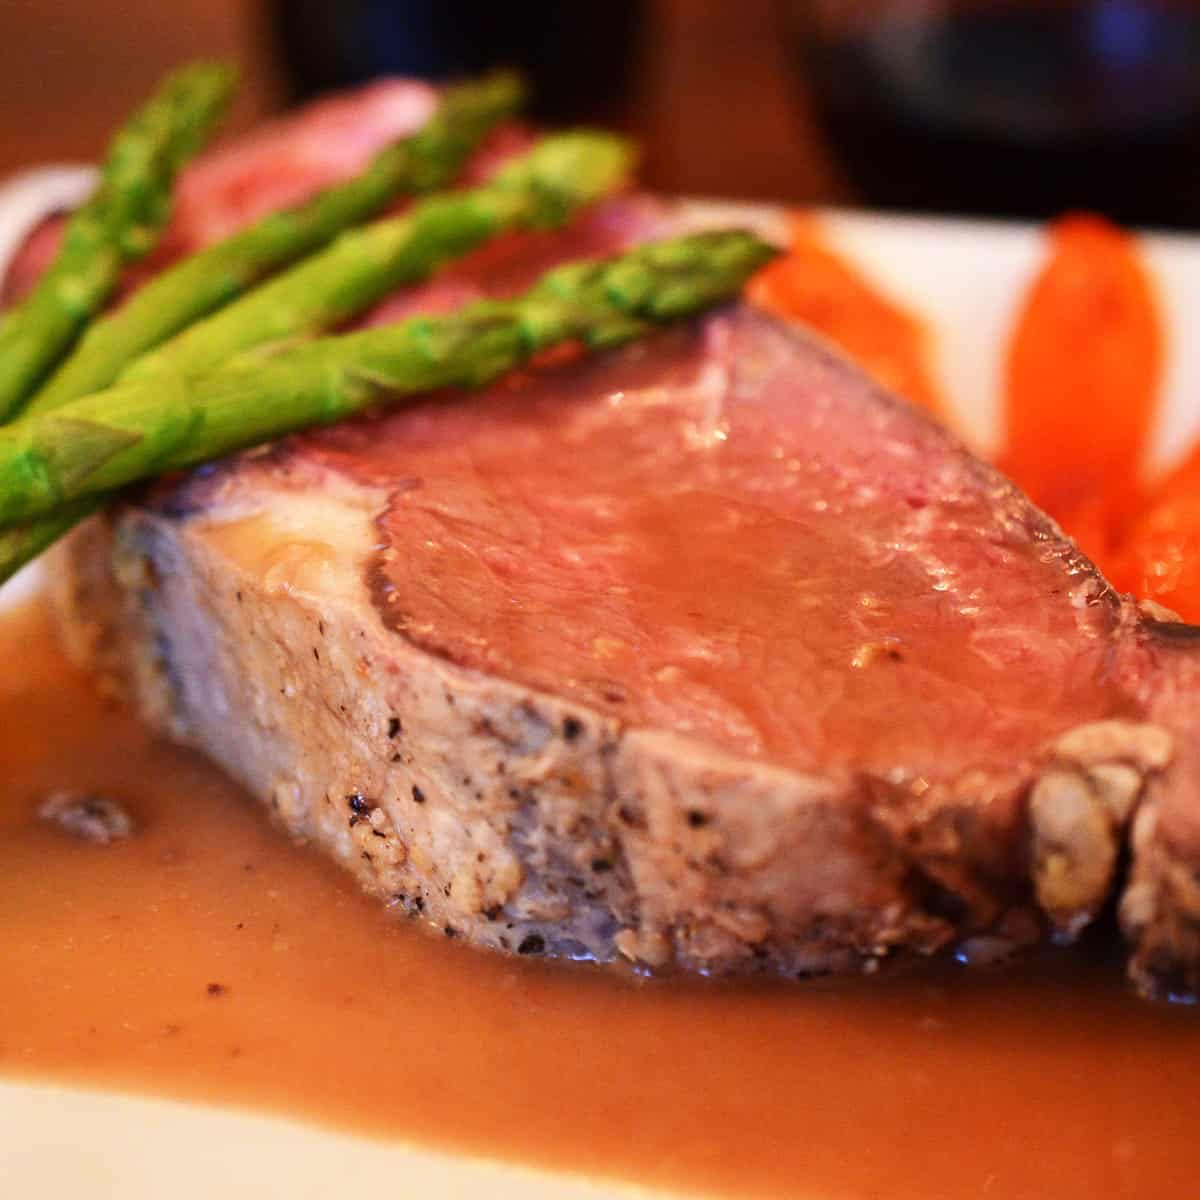 A plate of medium-rare prime rib with asparagus and carrots.